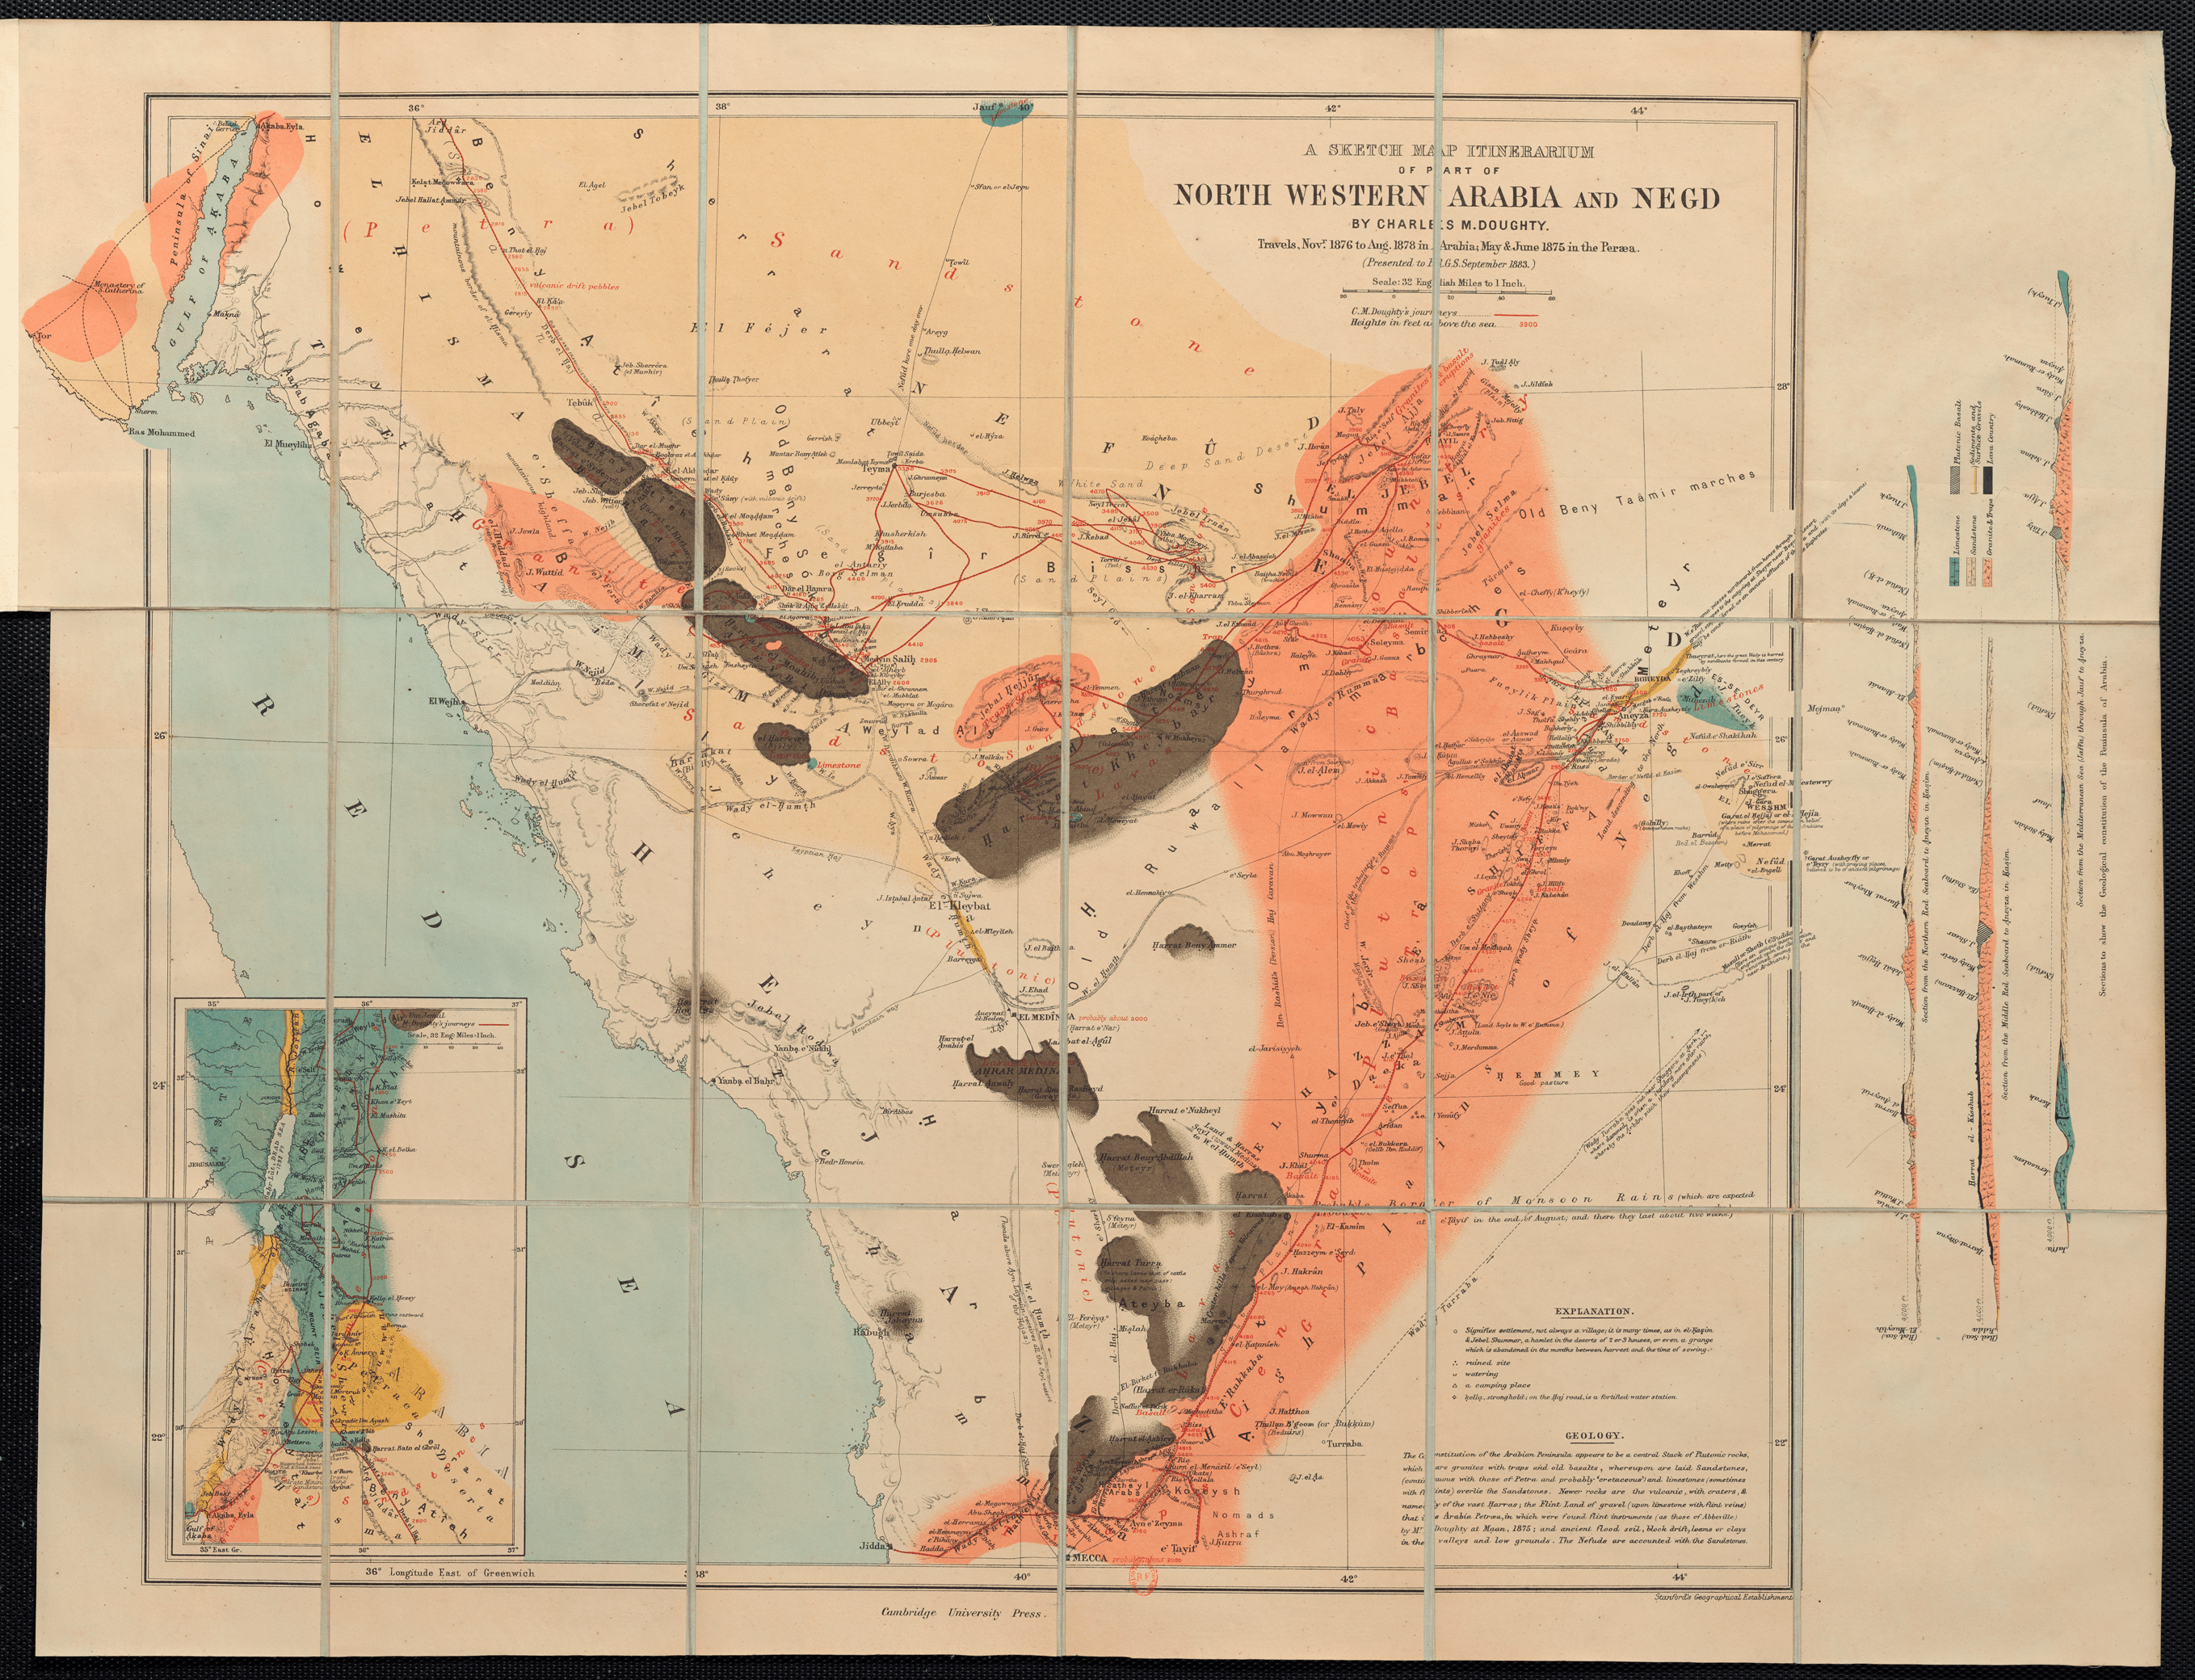 Fig  4 4 Doughty s Map of Arabia  1884    Dislocating the Orient Charles Doughty  A Sketch Map of Itinerarium of part of North Western  Arabia and Negd